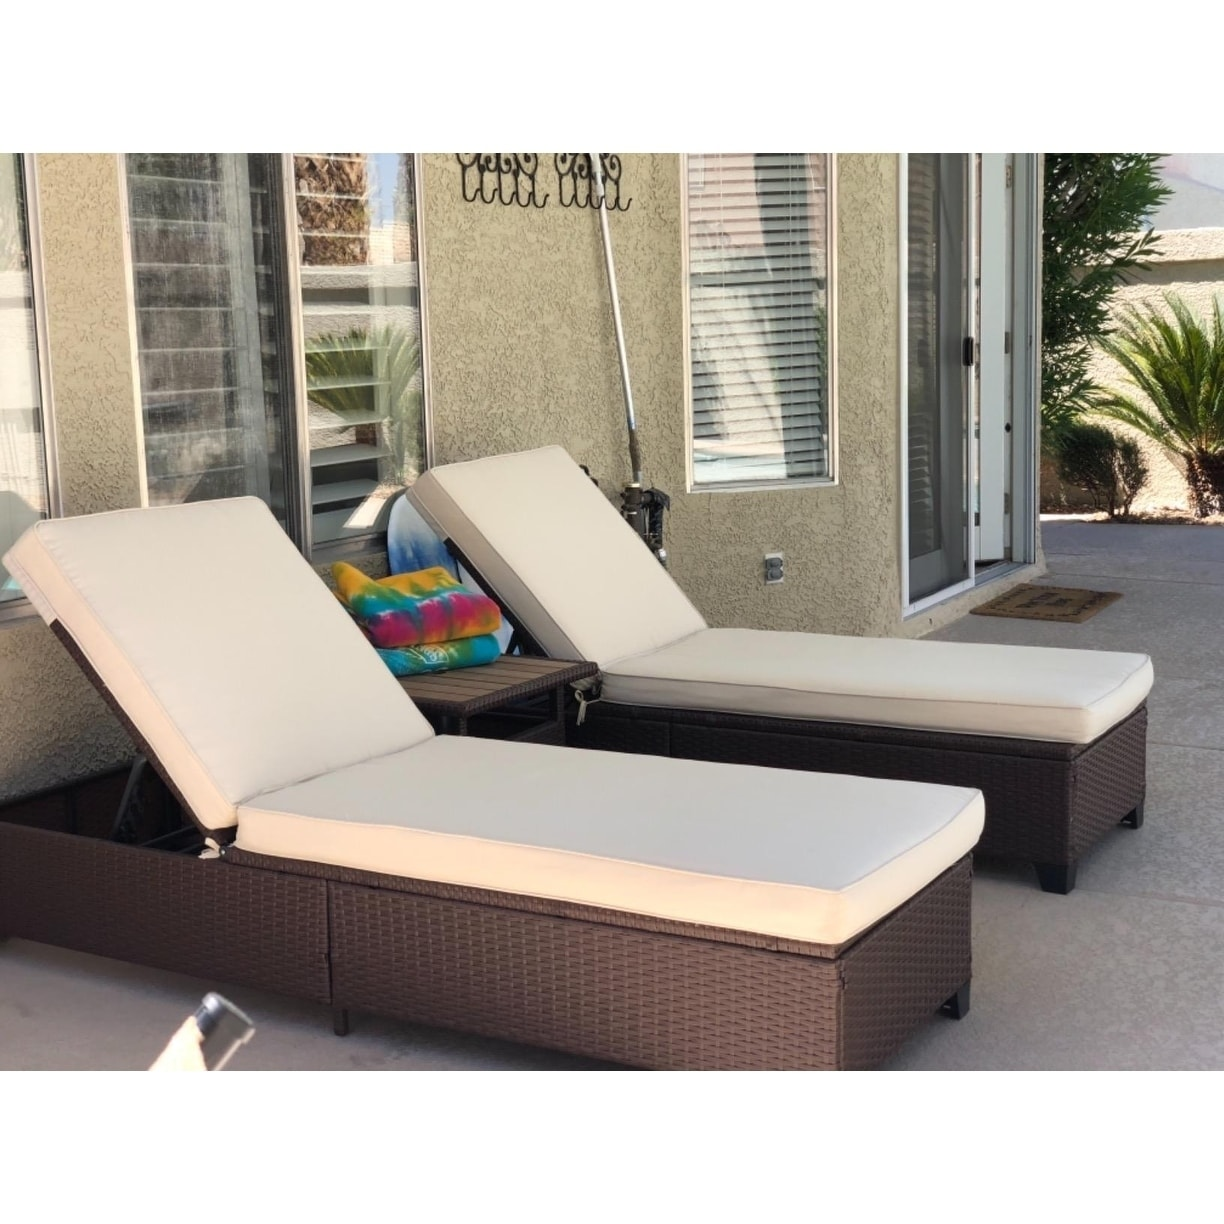 Perfect Shop 3 PC Outdoor Rattan Chaise Lounge Chair Patio PE Wicker Rattan  Furniture Adjustable Garden Pool Lounge Chairs And Table   On Sale   Free  Shipping Today ...